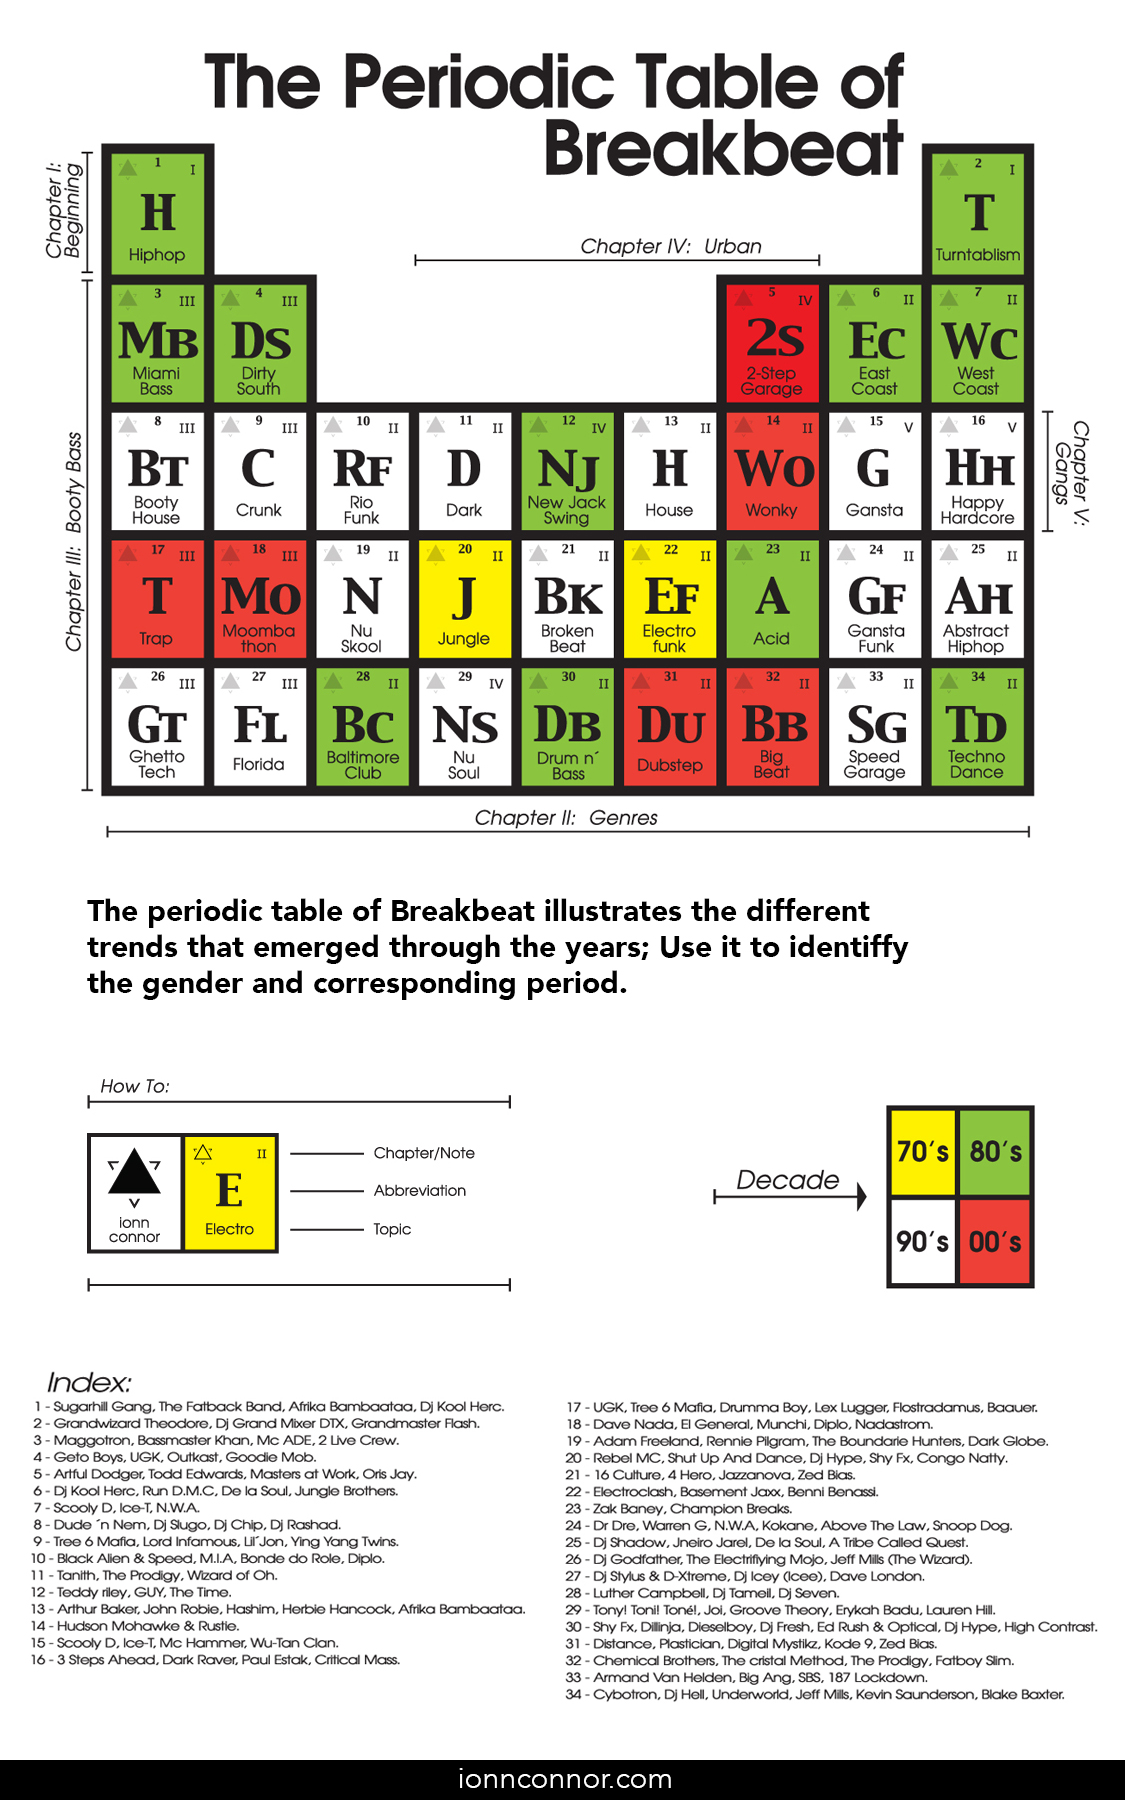 The Periodic Table Of Breakbeat Ionnconnor